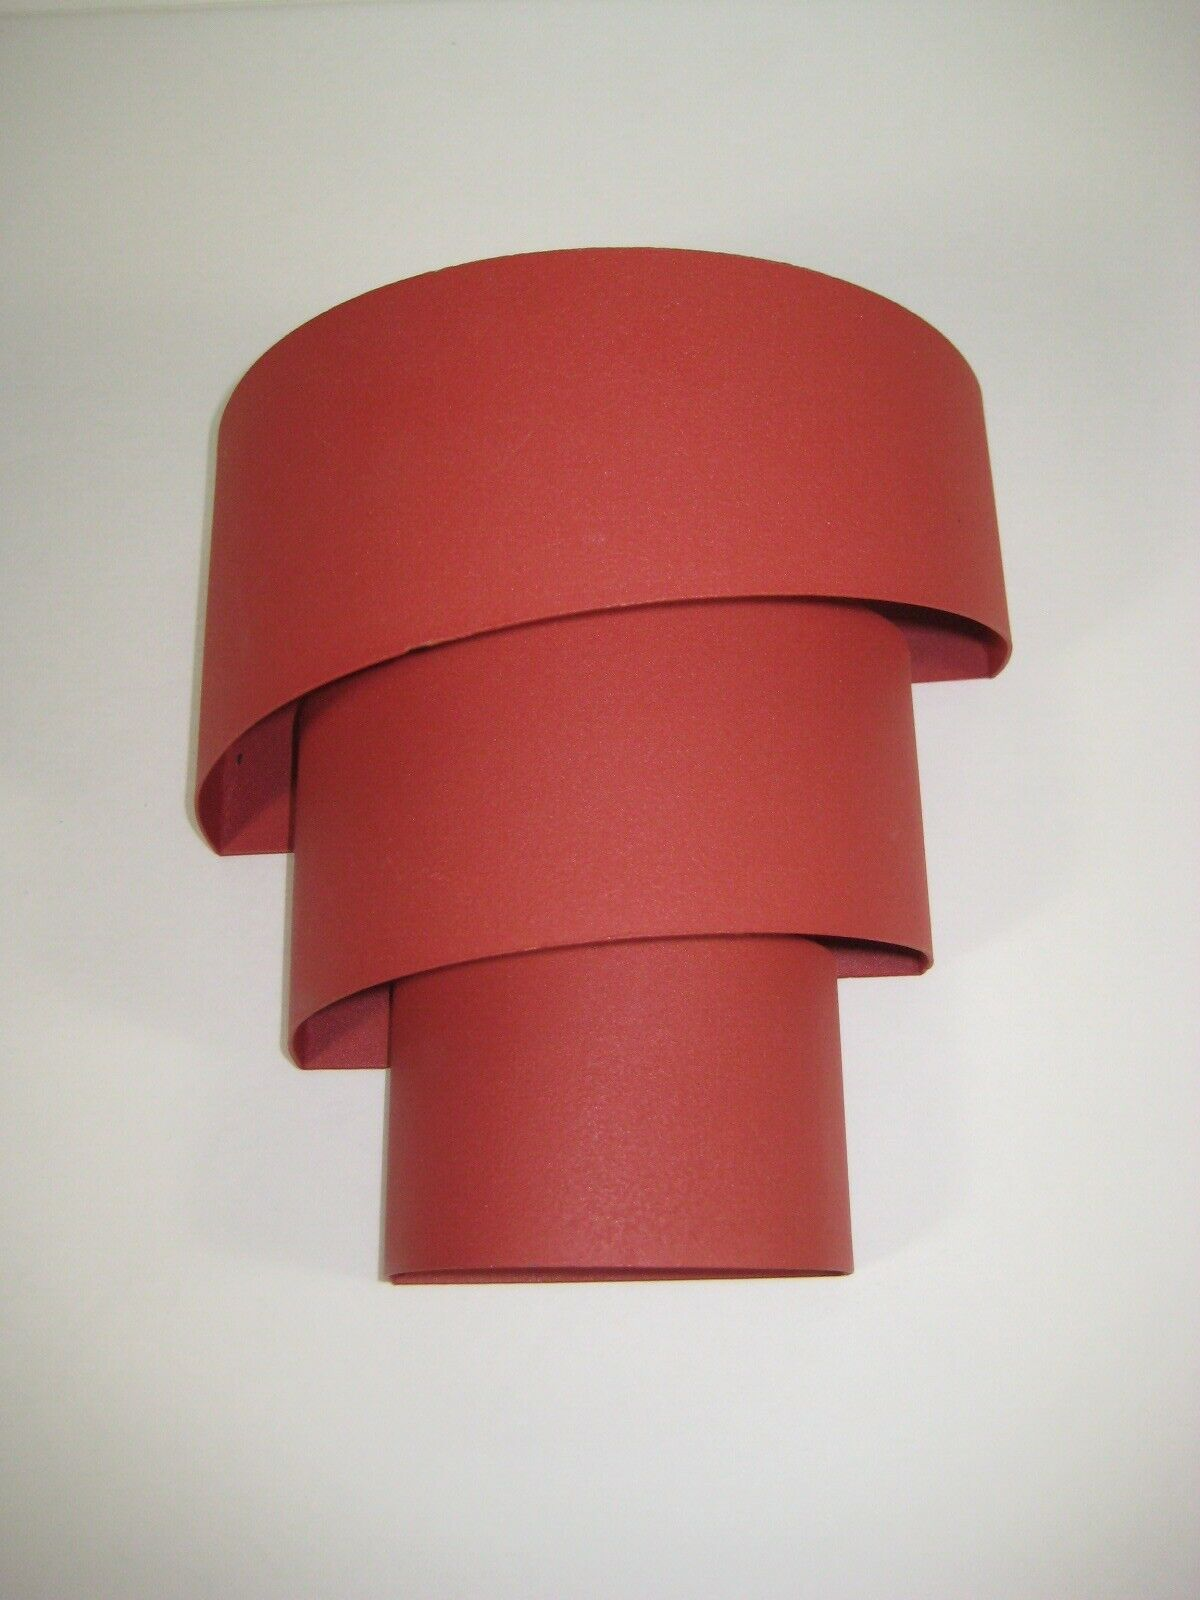 Primary image for RED Sconce Decorative Swirl Design - Excellent Condition --- photos